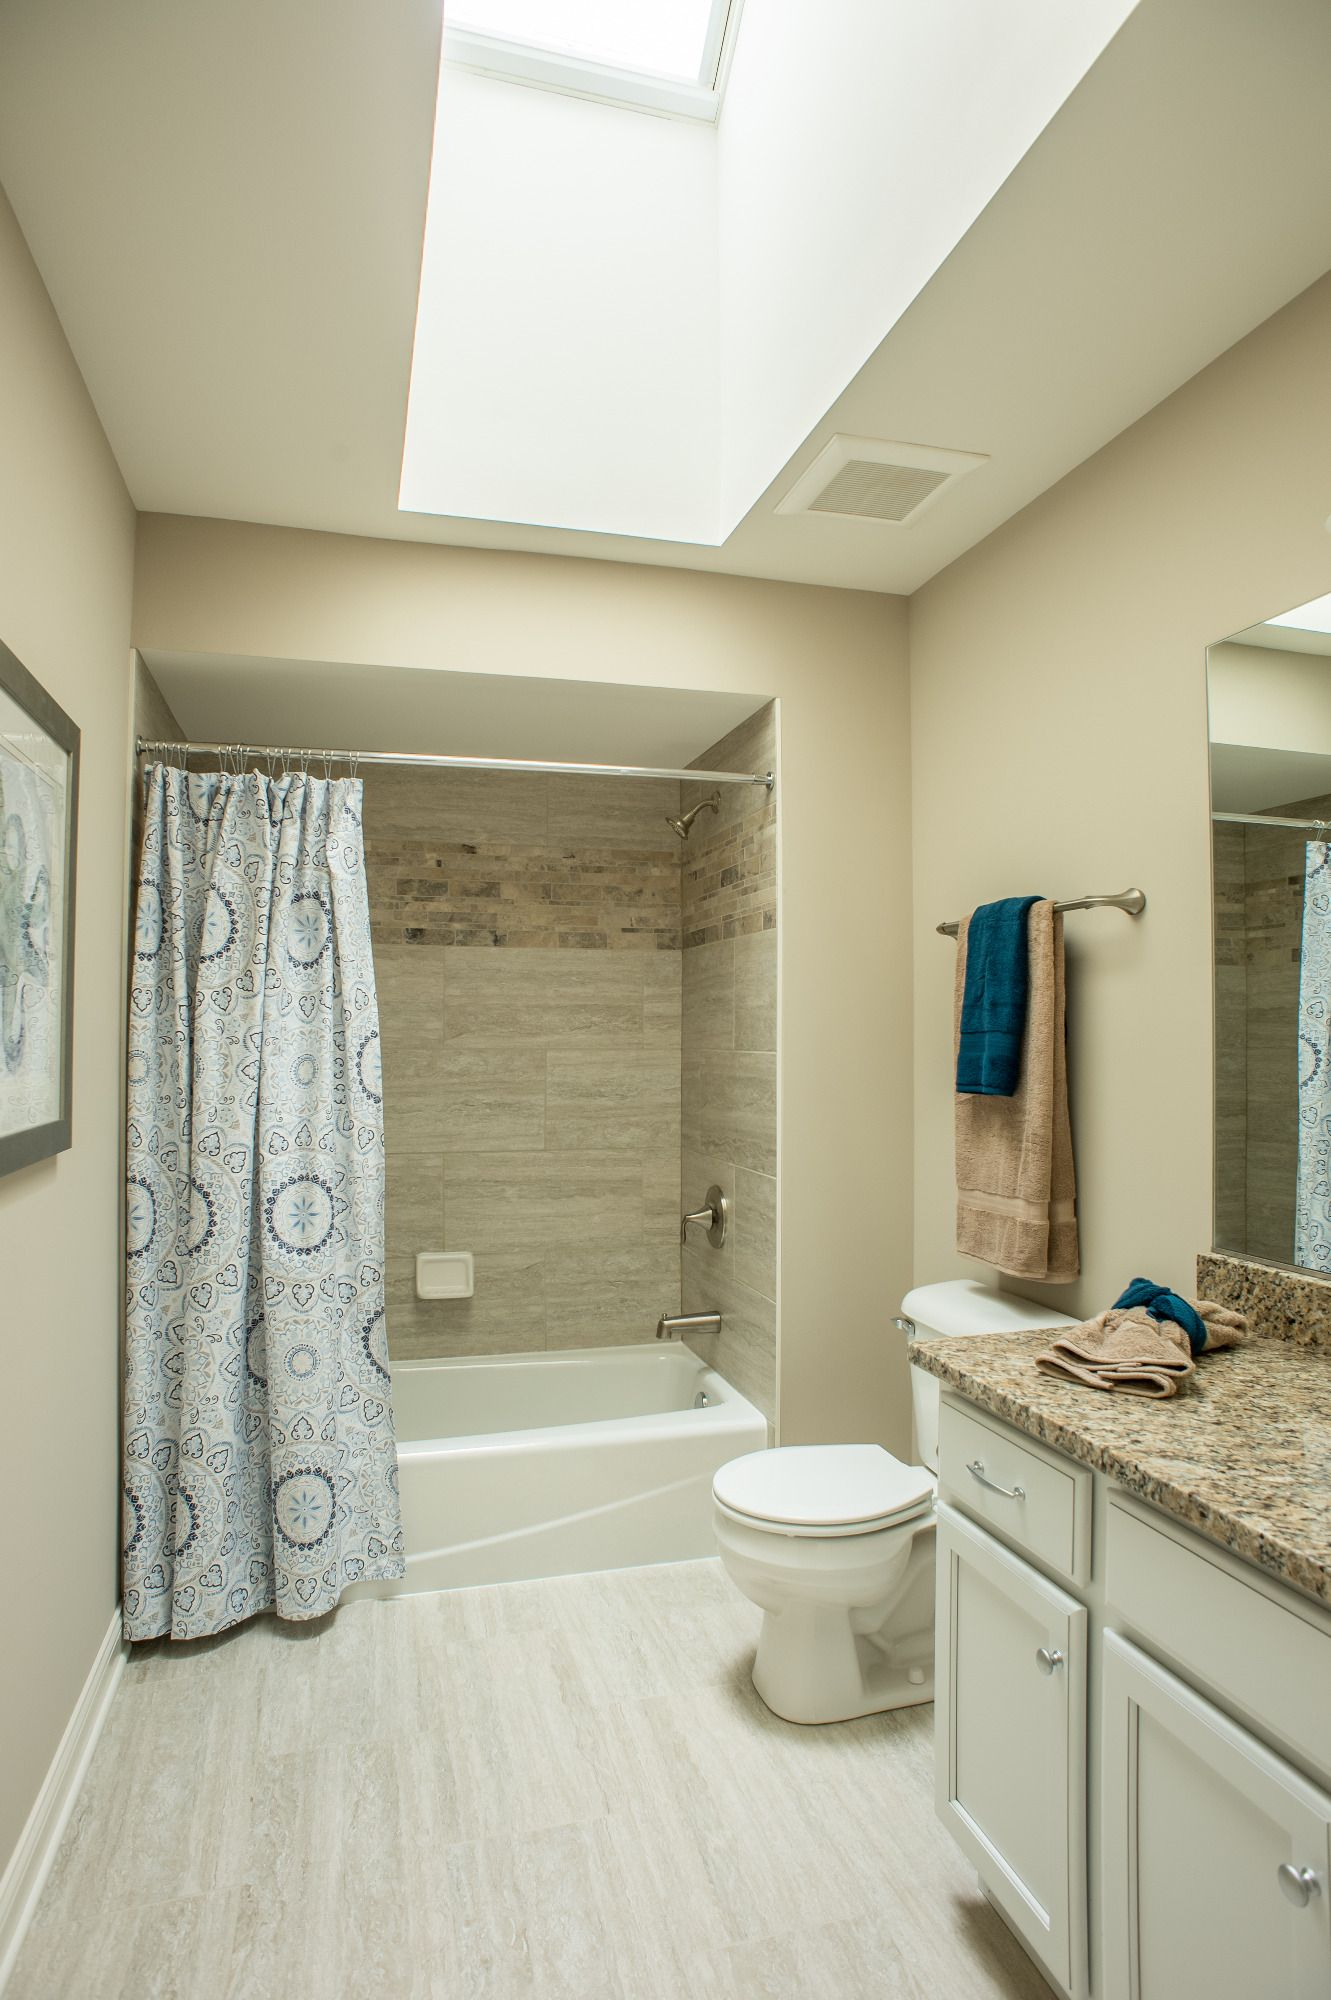 Bathroom featured in the Danbury By Gallagher and Henry in Chicago, IL